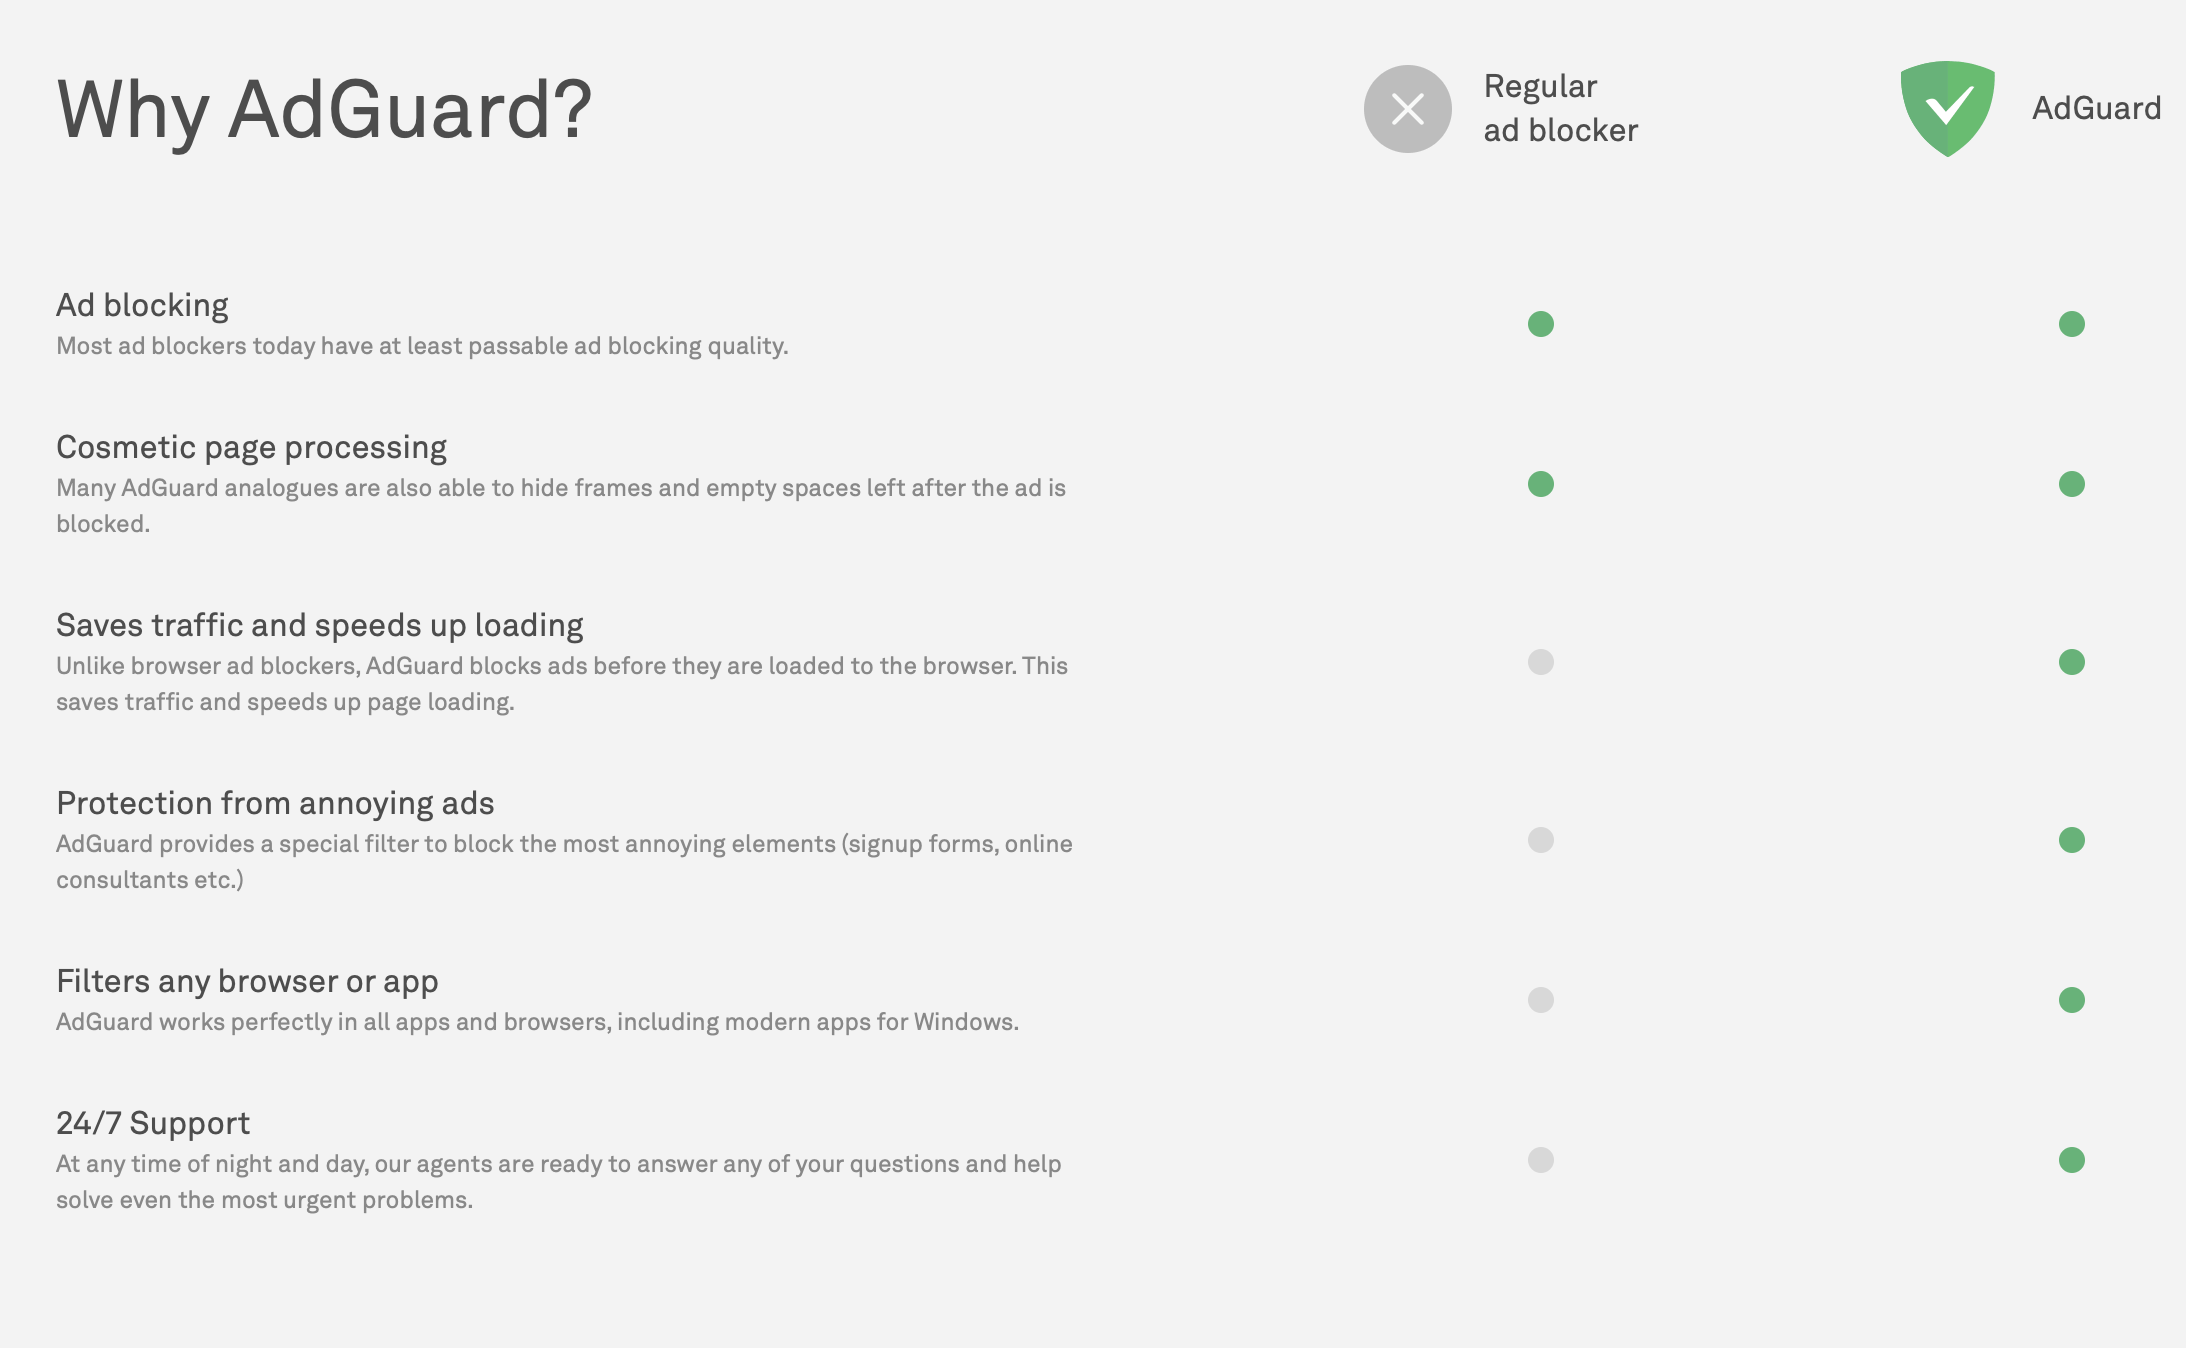 AdGuard Review: A Powerful Ad Blocking Solution, But Is It Safe?